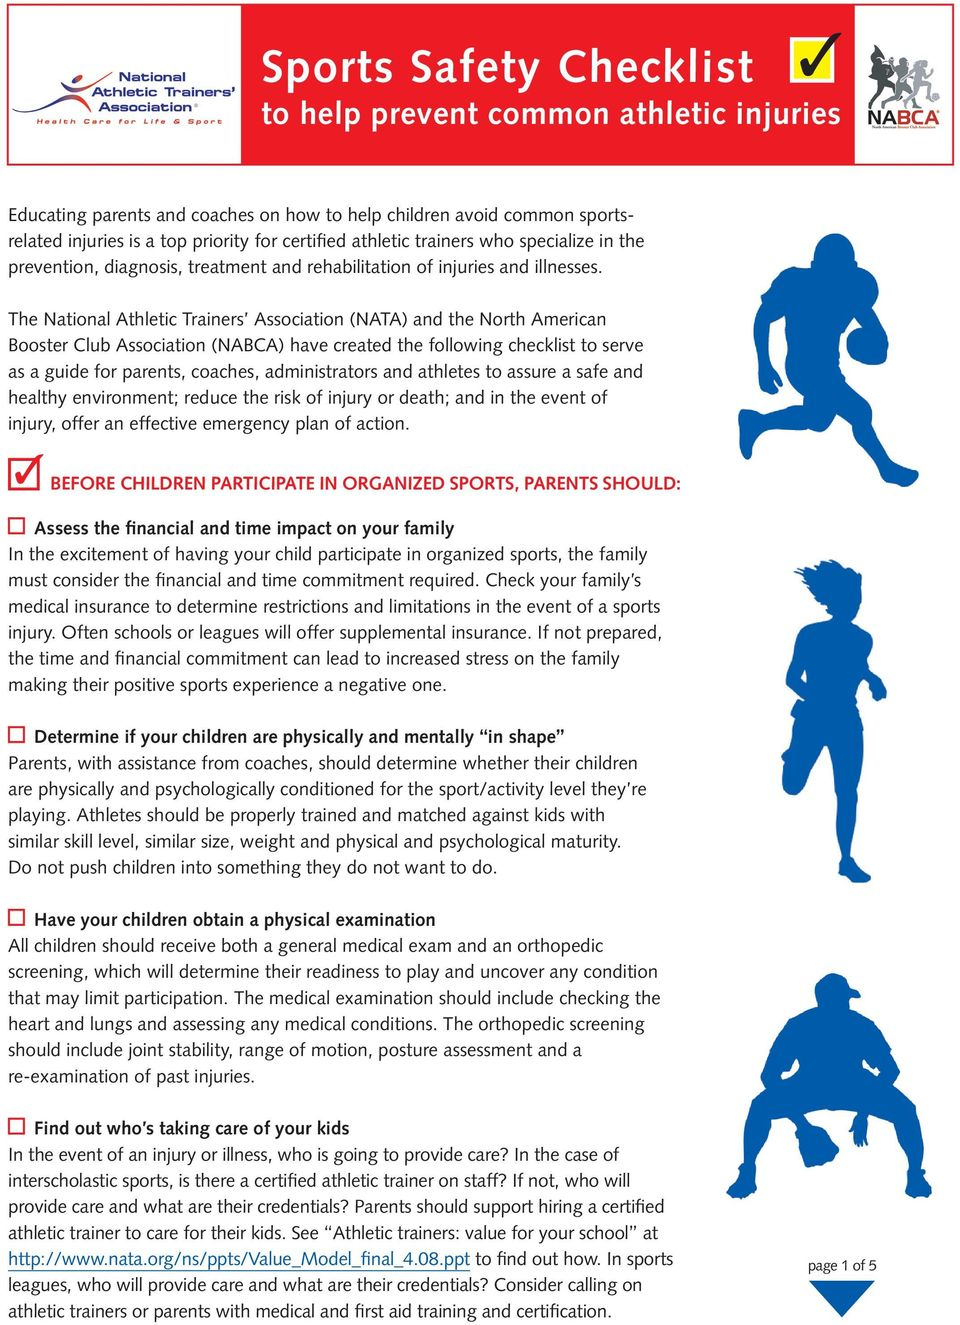 The National Athletic Trainers Association (NATA) and the North American Booster Club Association (NABCA) have created the following checklist to serve as a guide for parents, coaches, administrators